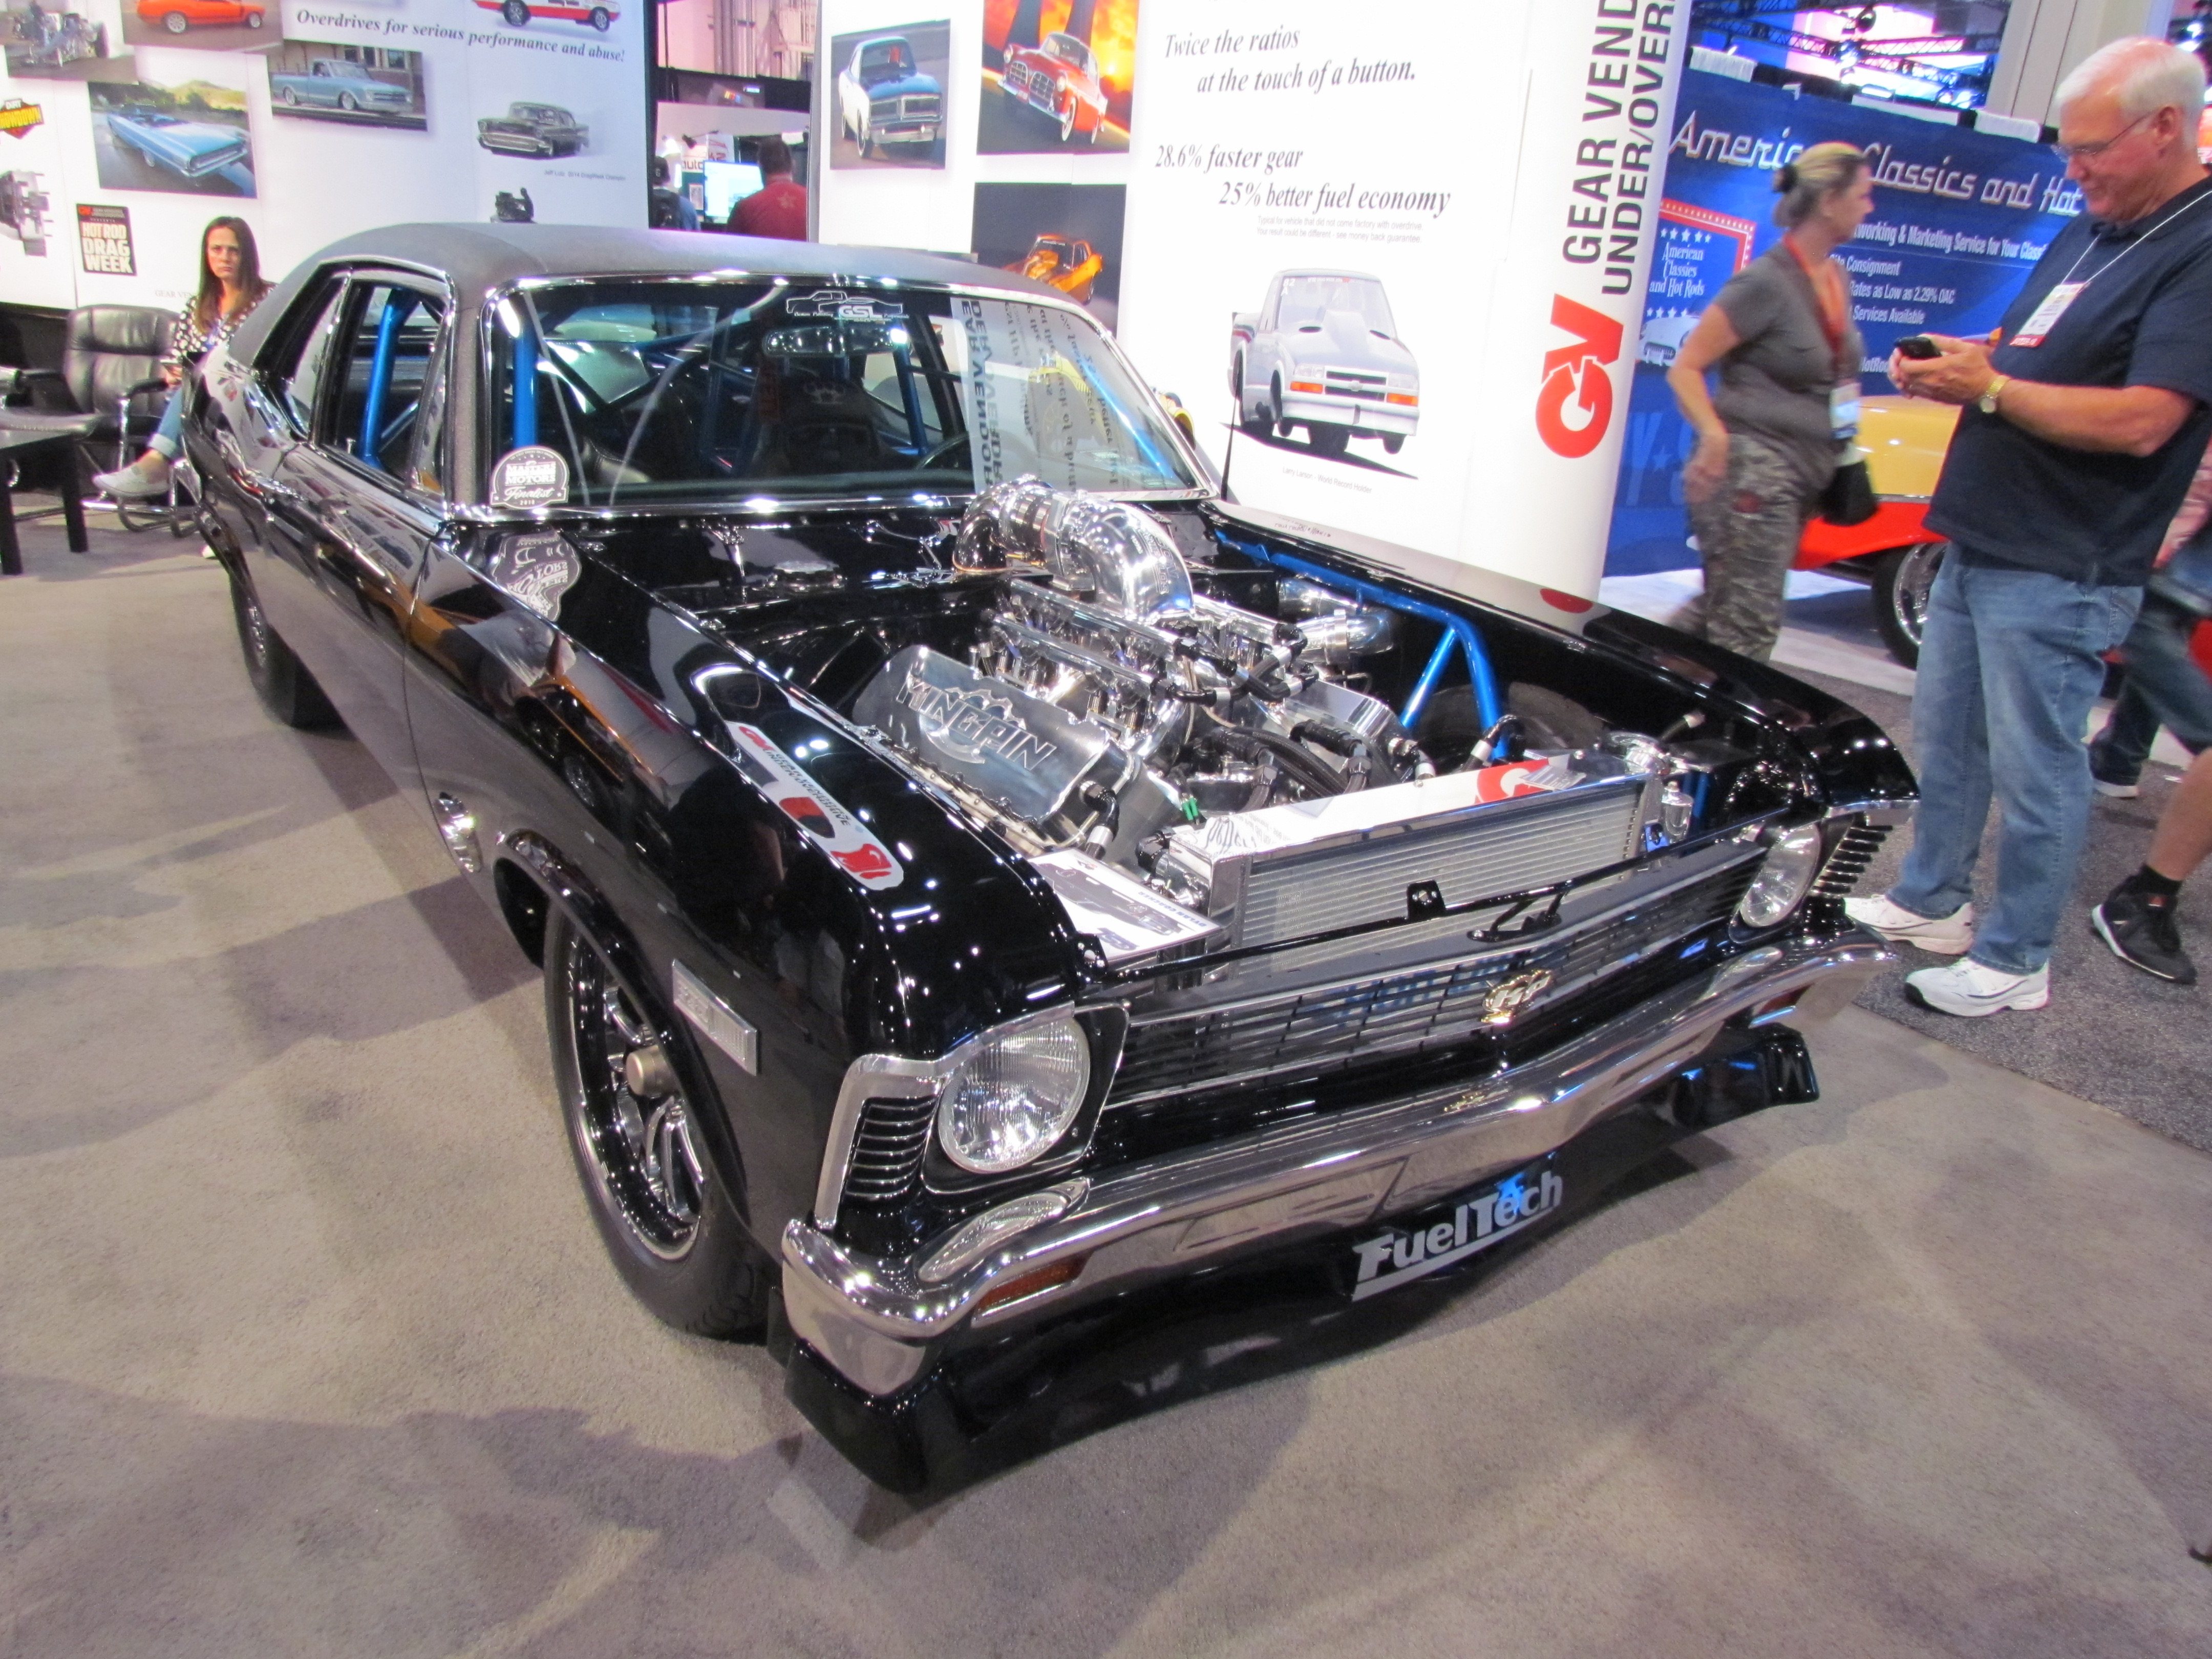 SEMA, Young car builders compete for SEMA honors, ClassicCars.com Journal